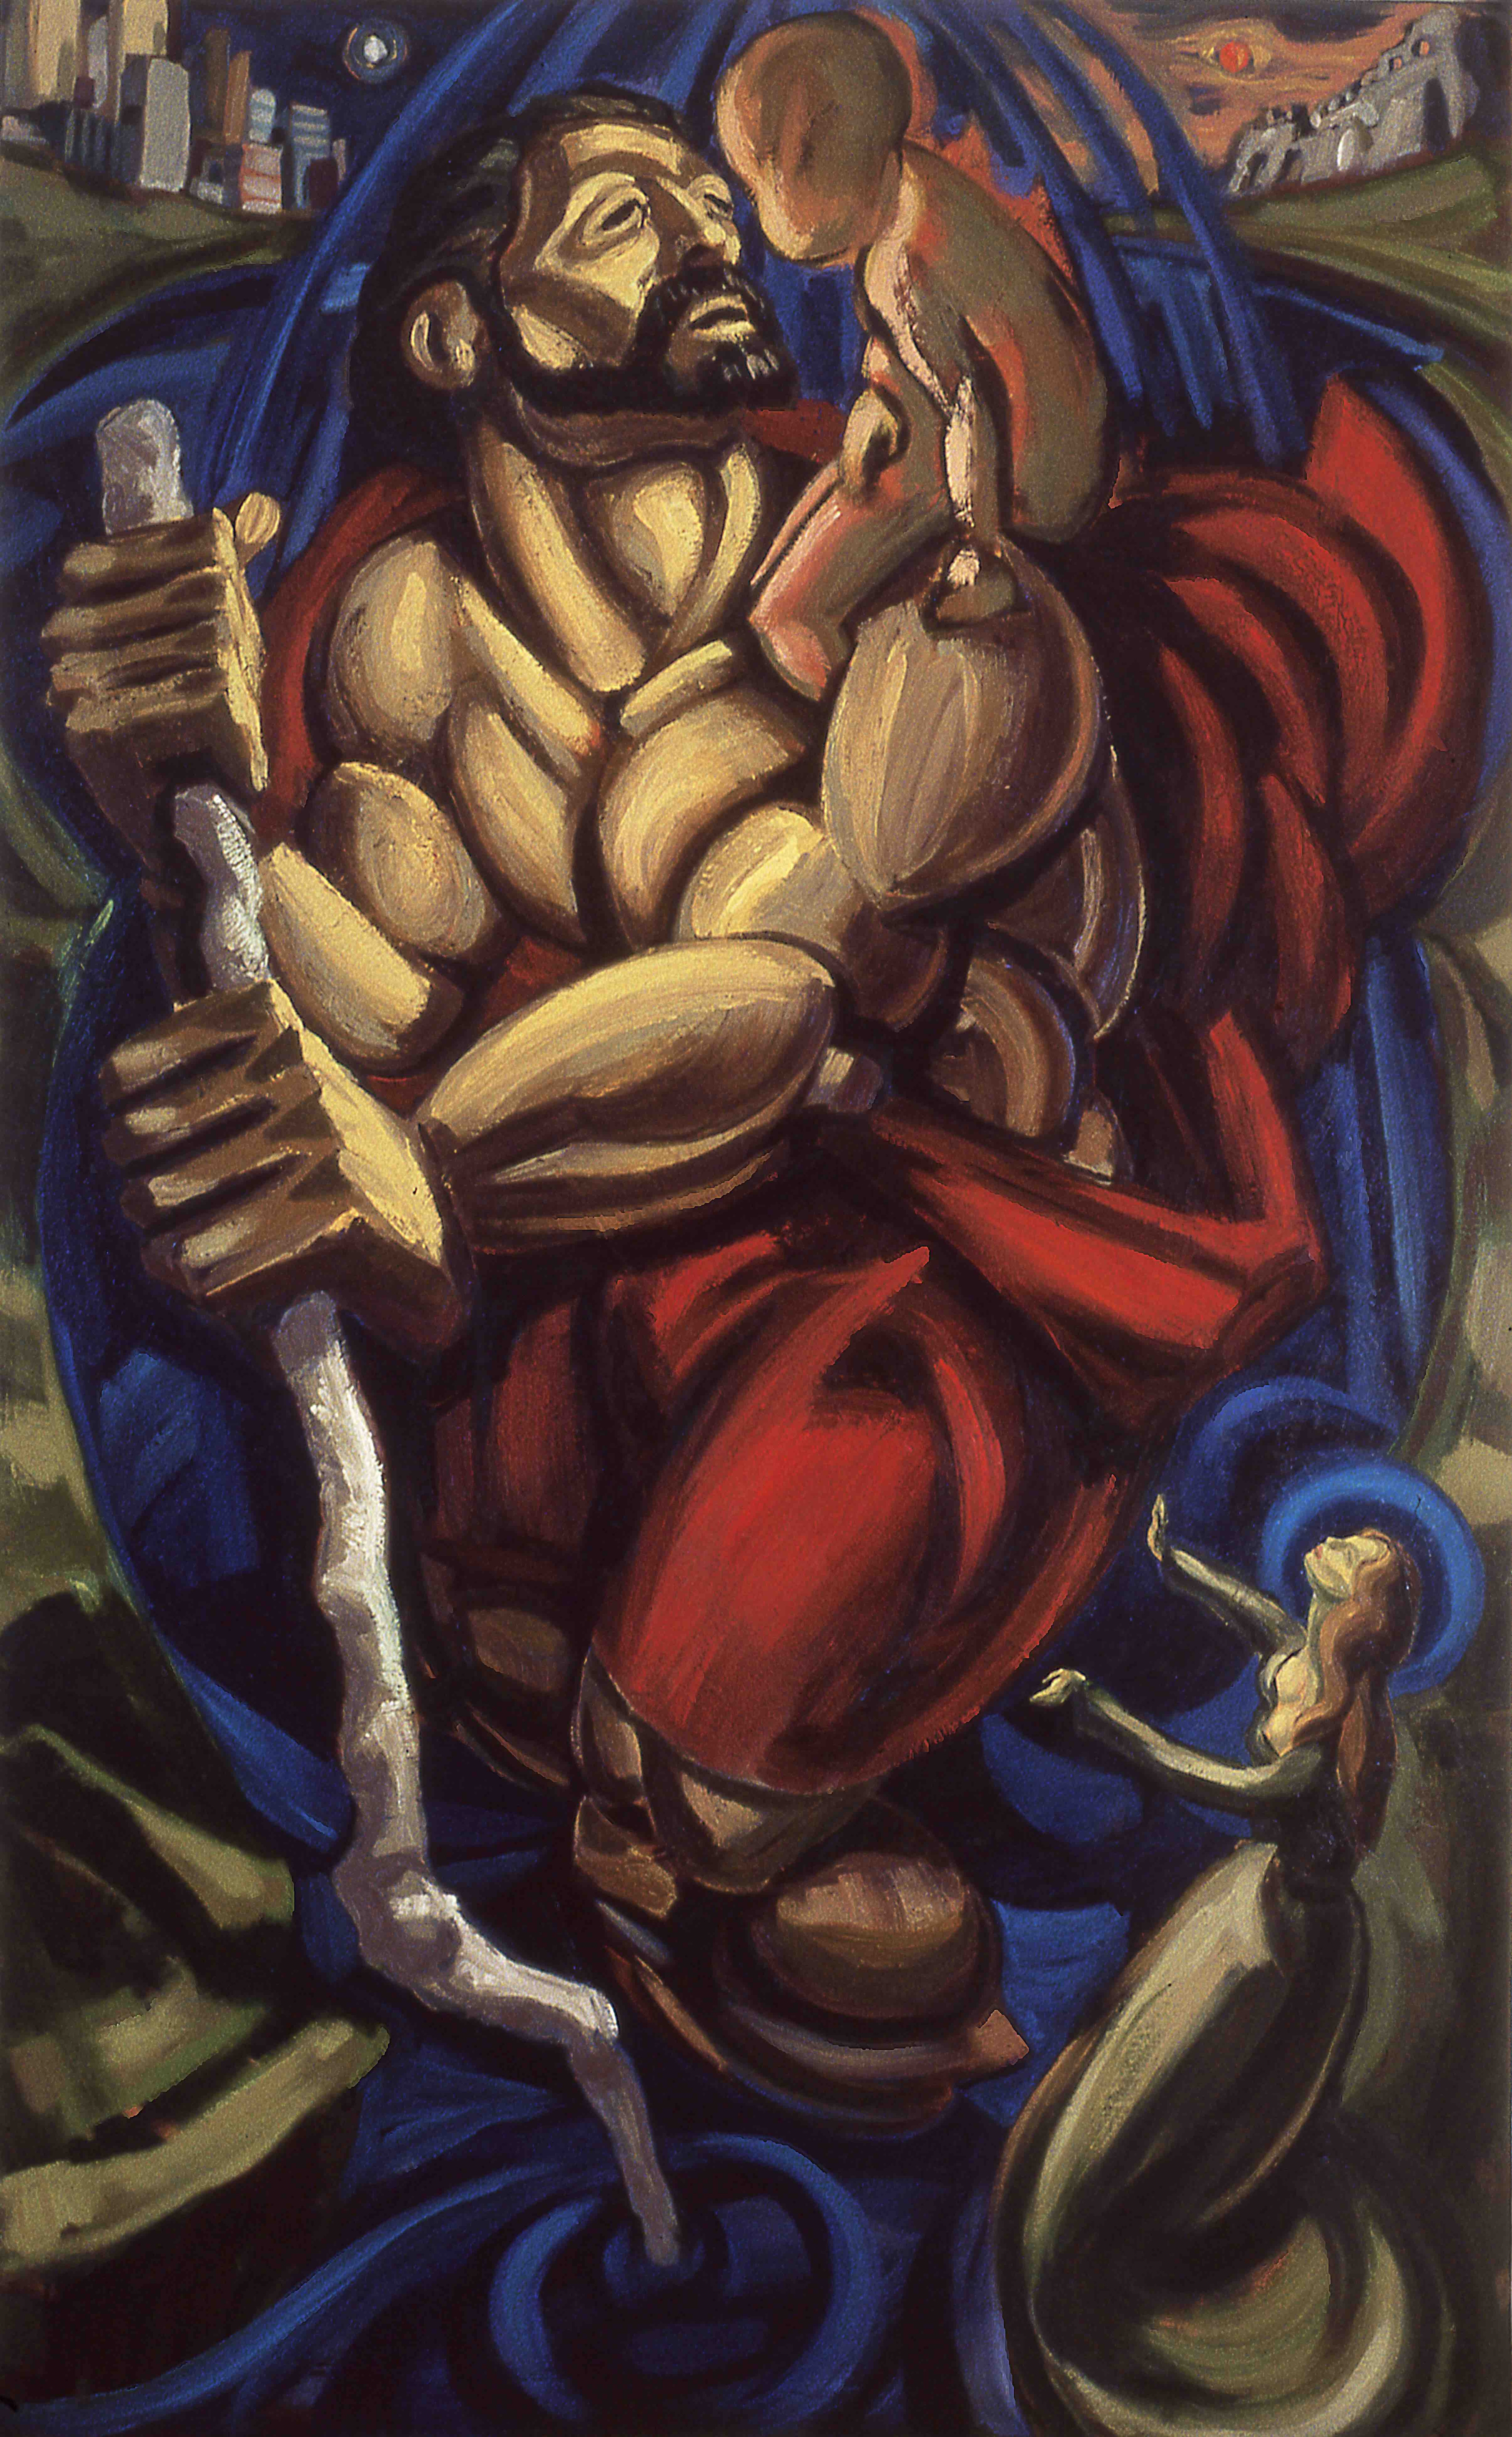 St CHRISTOPHER, painted by Vince Mancuso in 1991, oil on canvas 5x8 feet. Permanent collection of the Delia Cultural Social Centre.